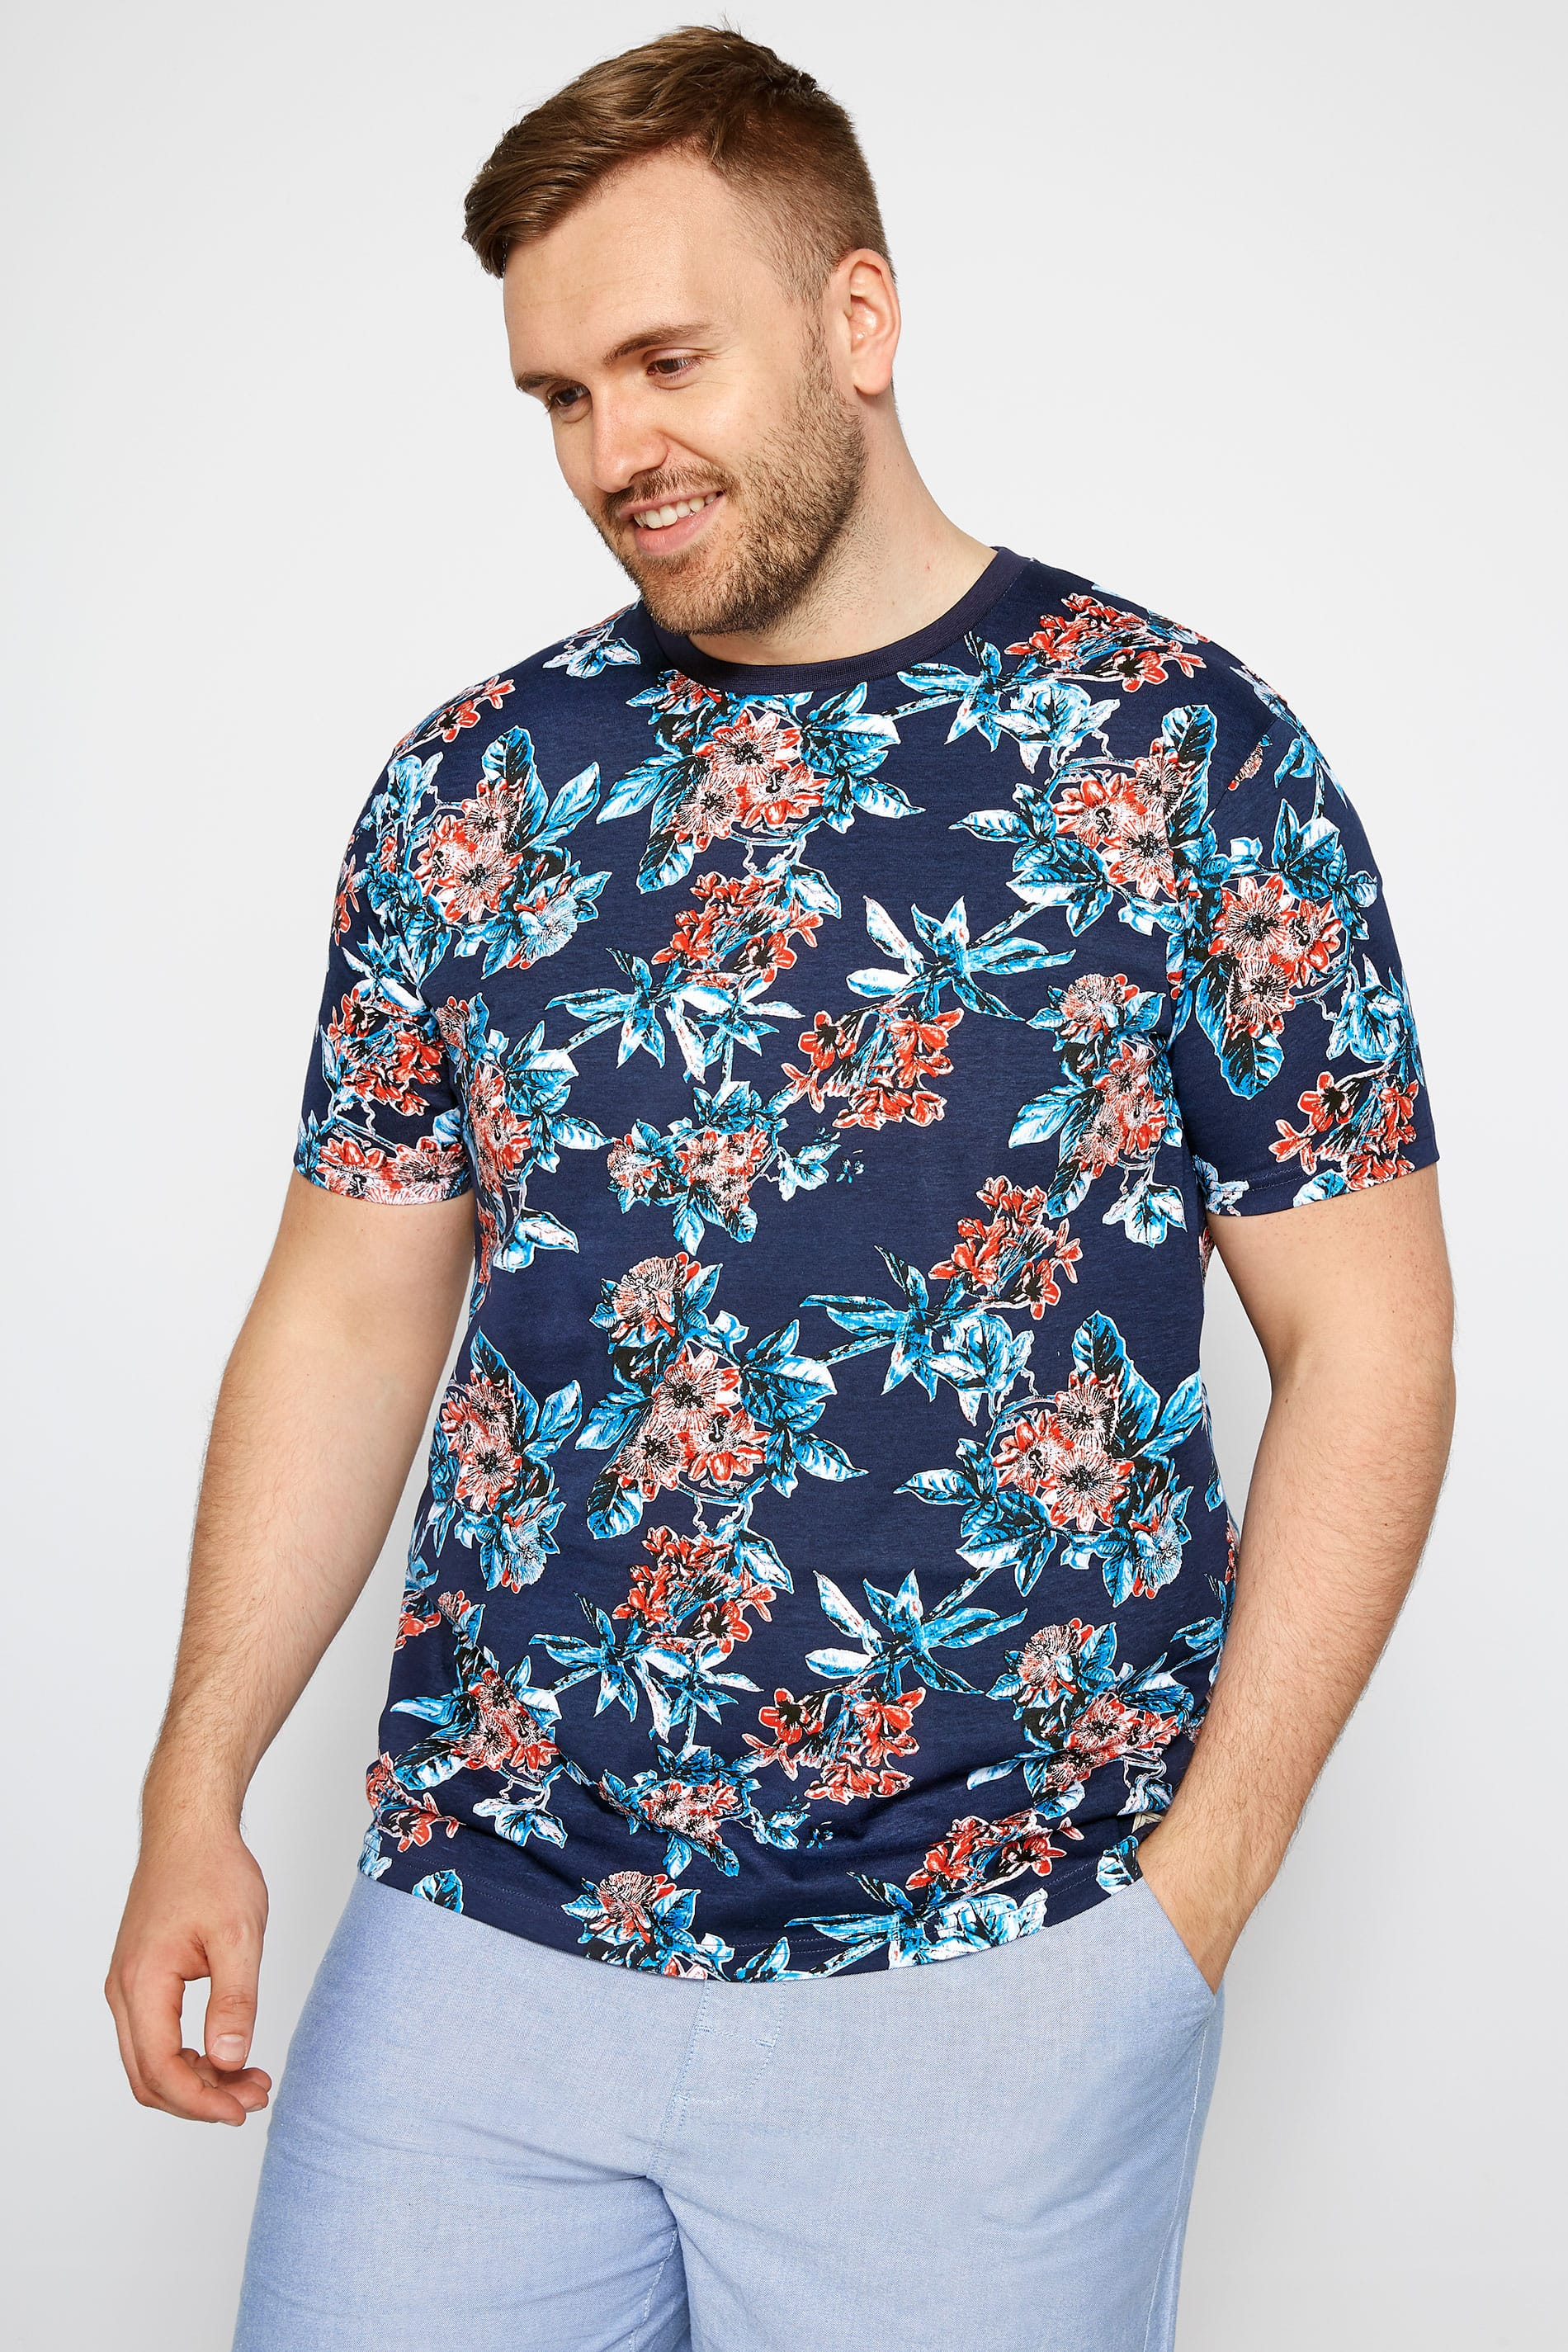 BadRhino Navy Tropical Floral T-shirt